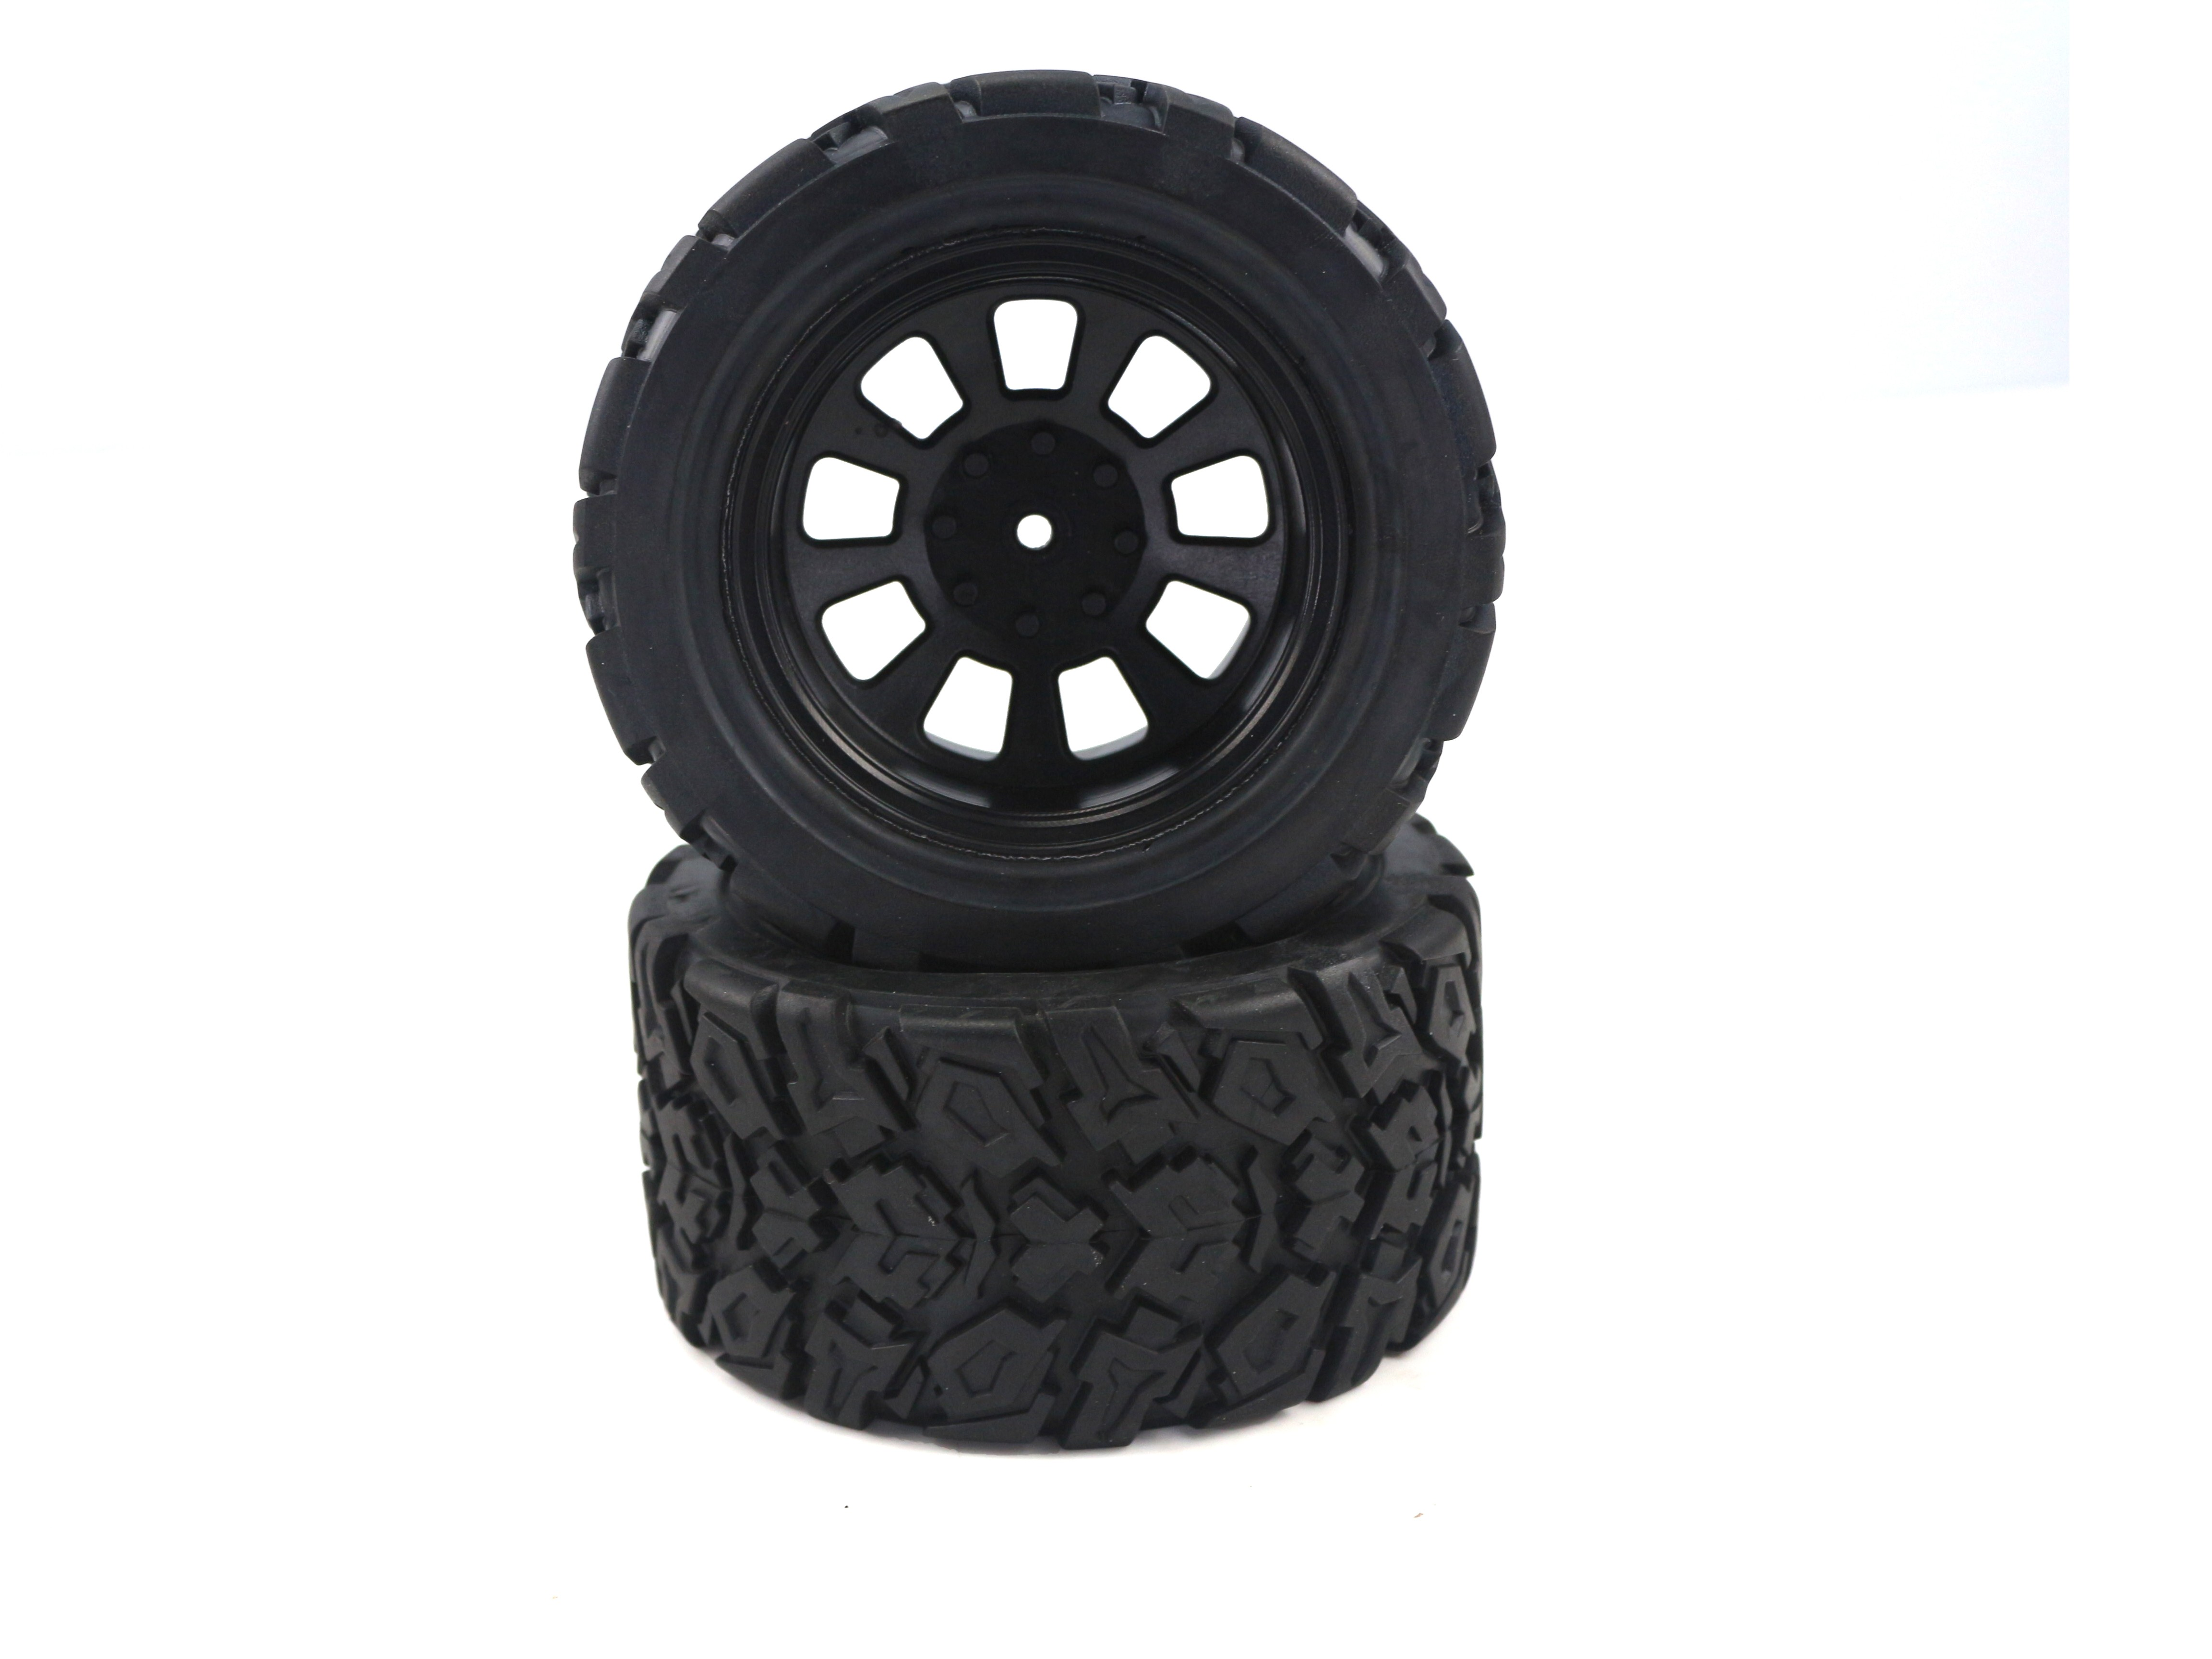 Himoto Monster Truck Wheels and Tyres. 1pr